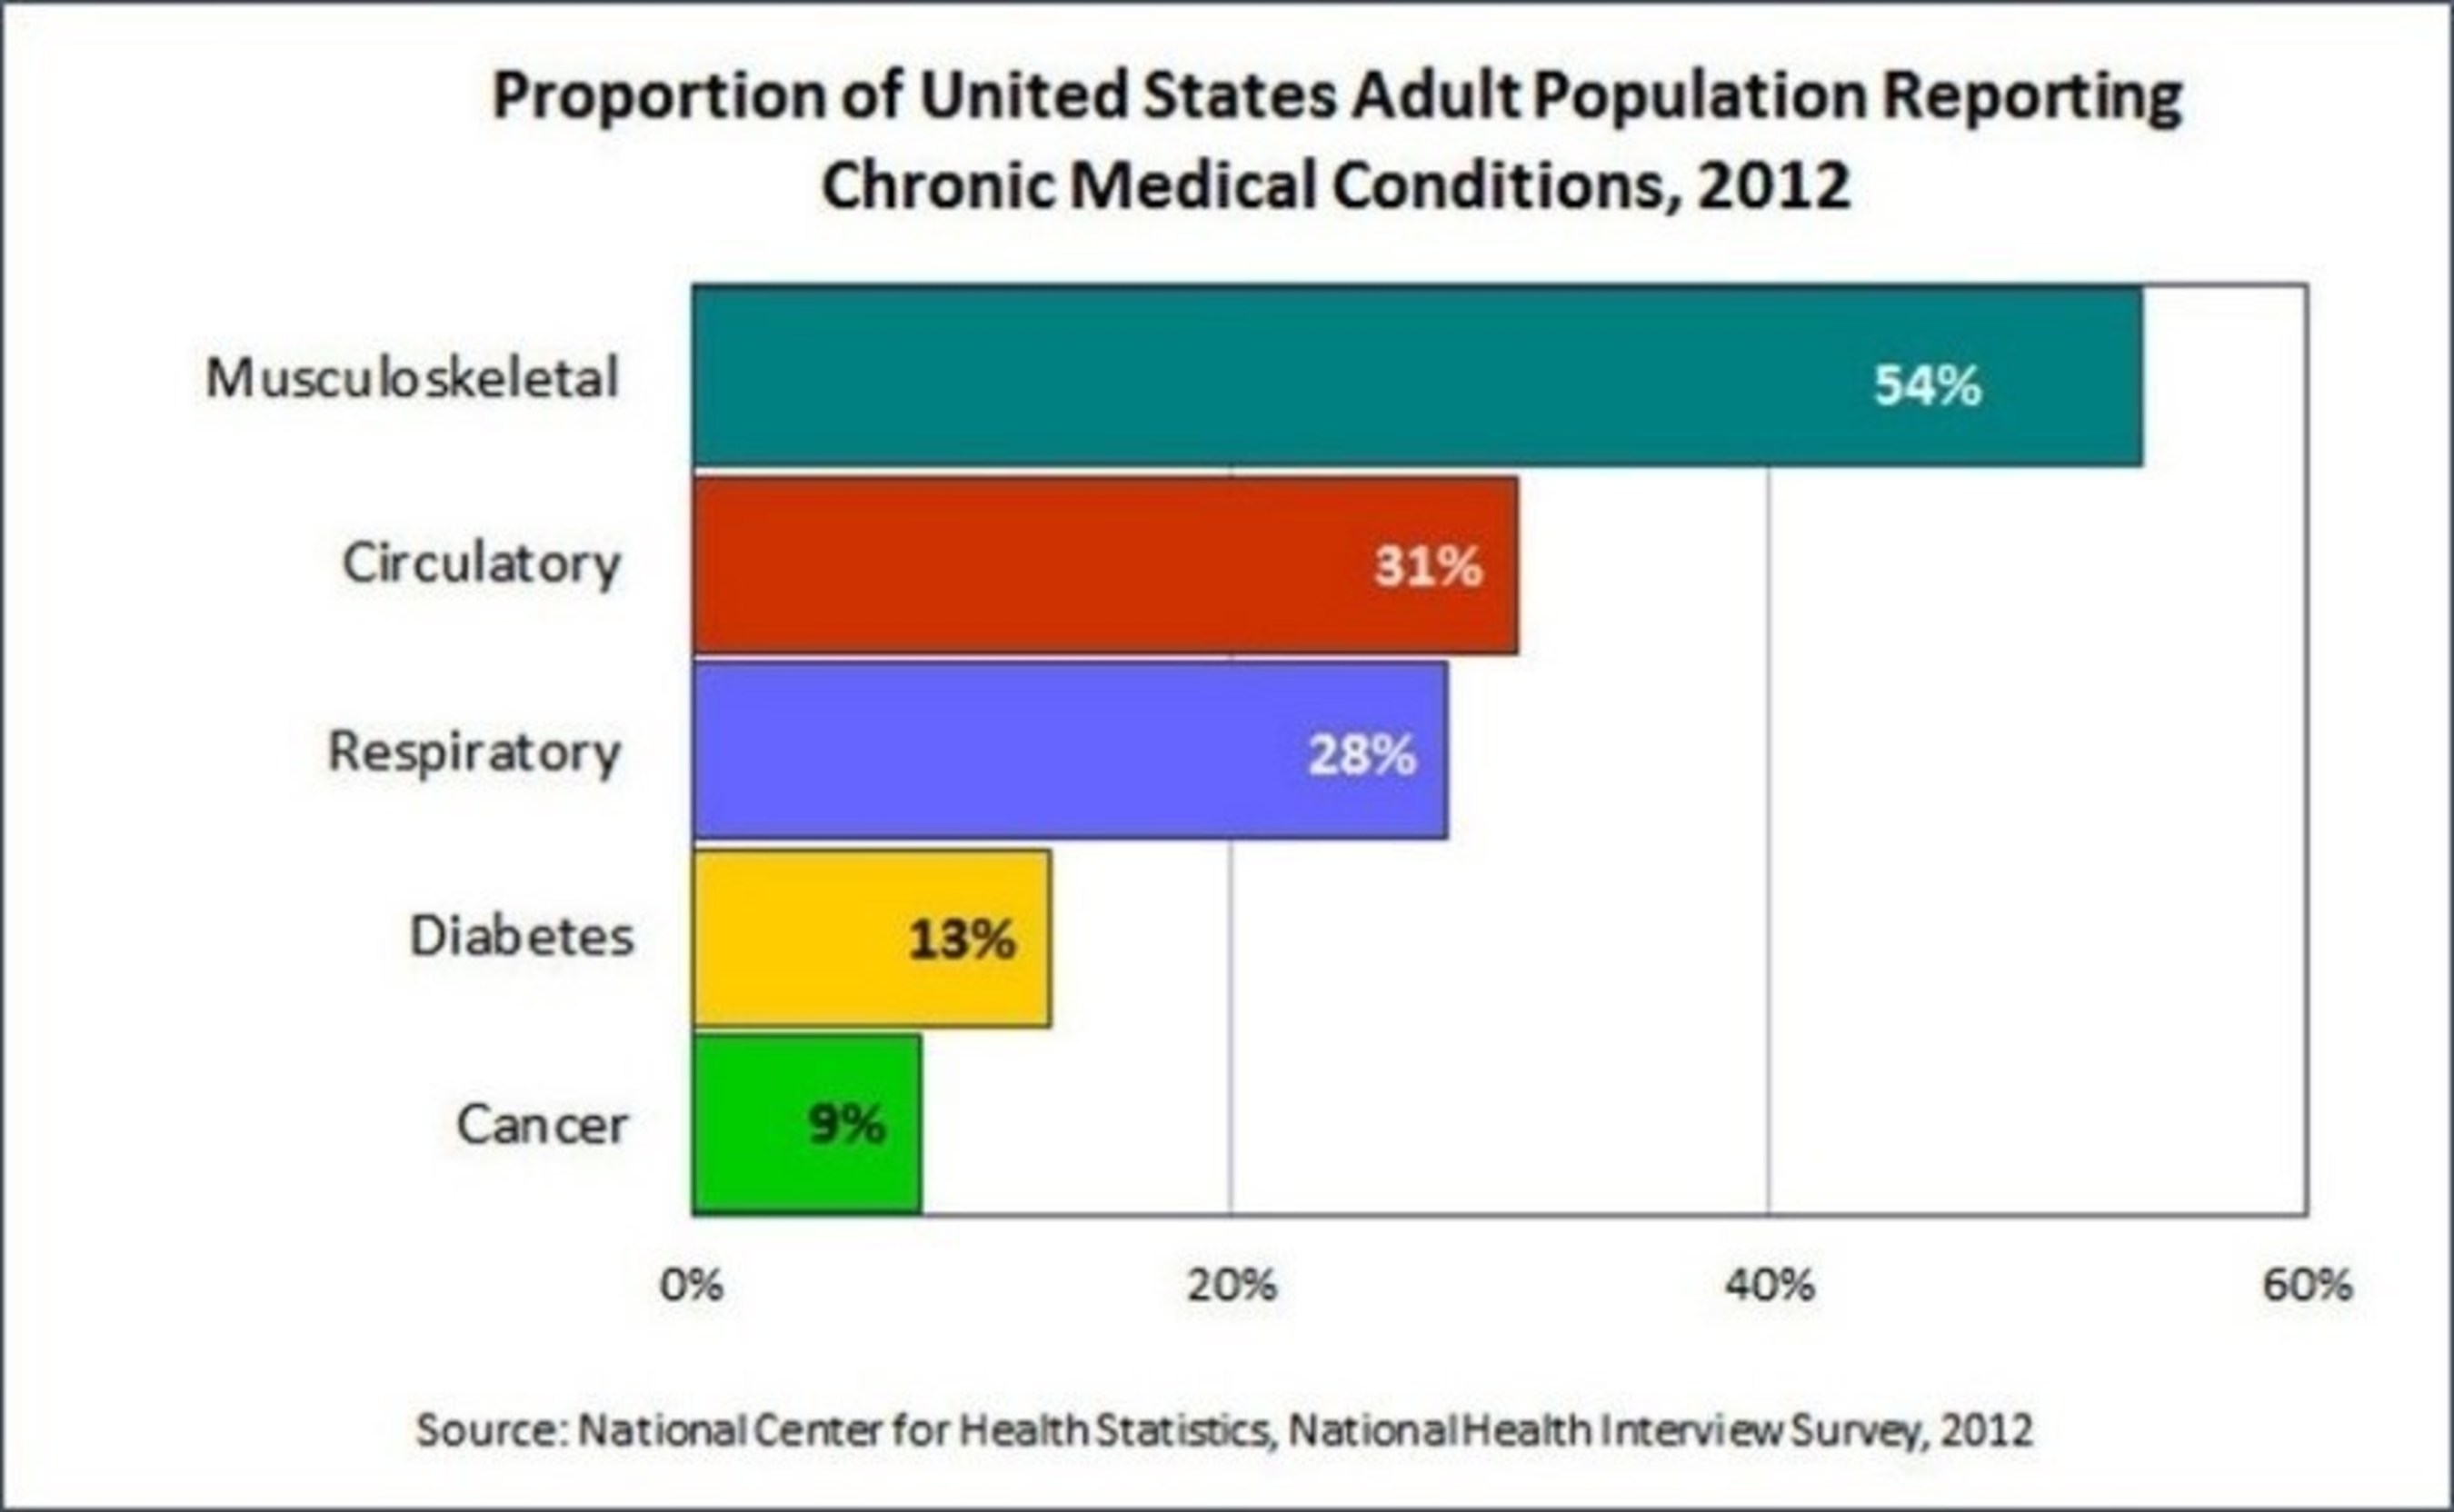 Proportion of United States Adult Population Reporting Chronic Medical Conditions, 2012